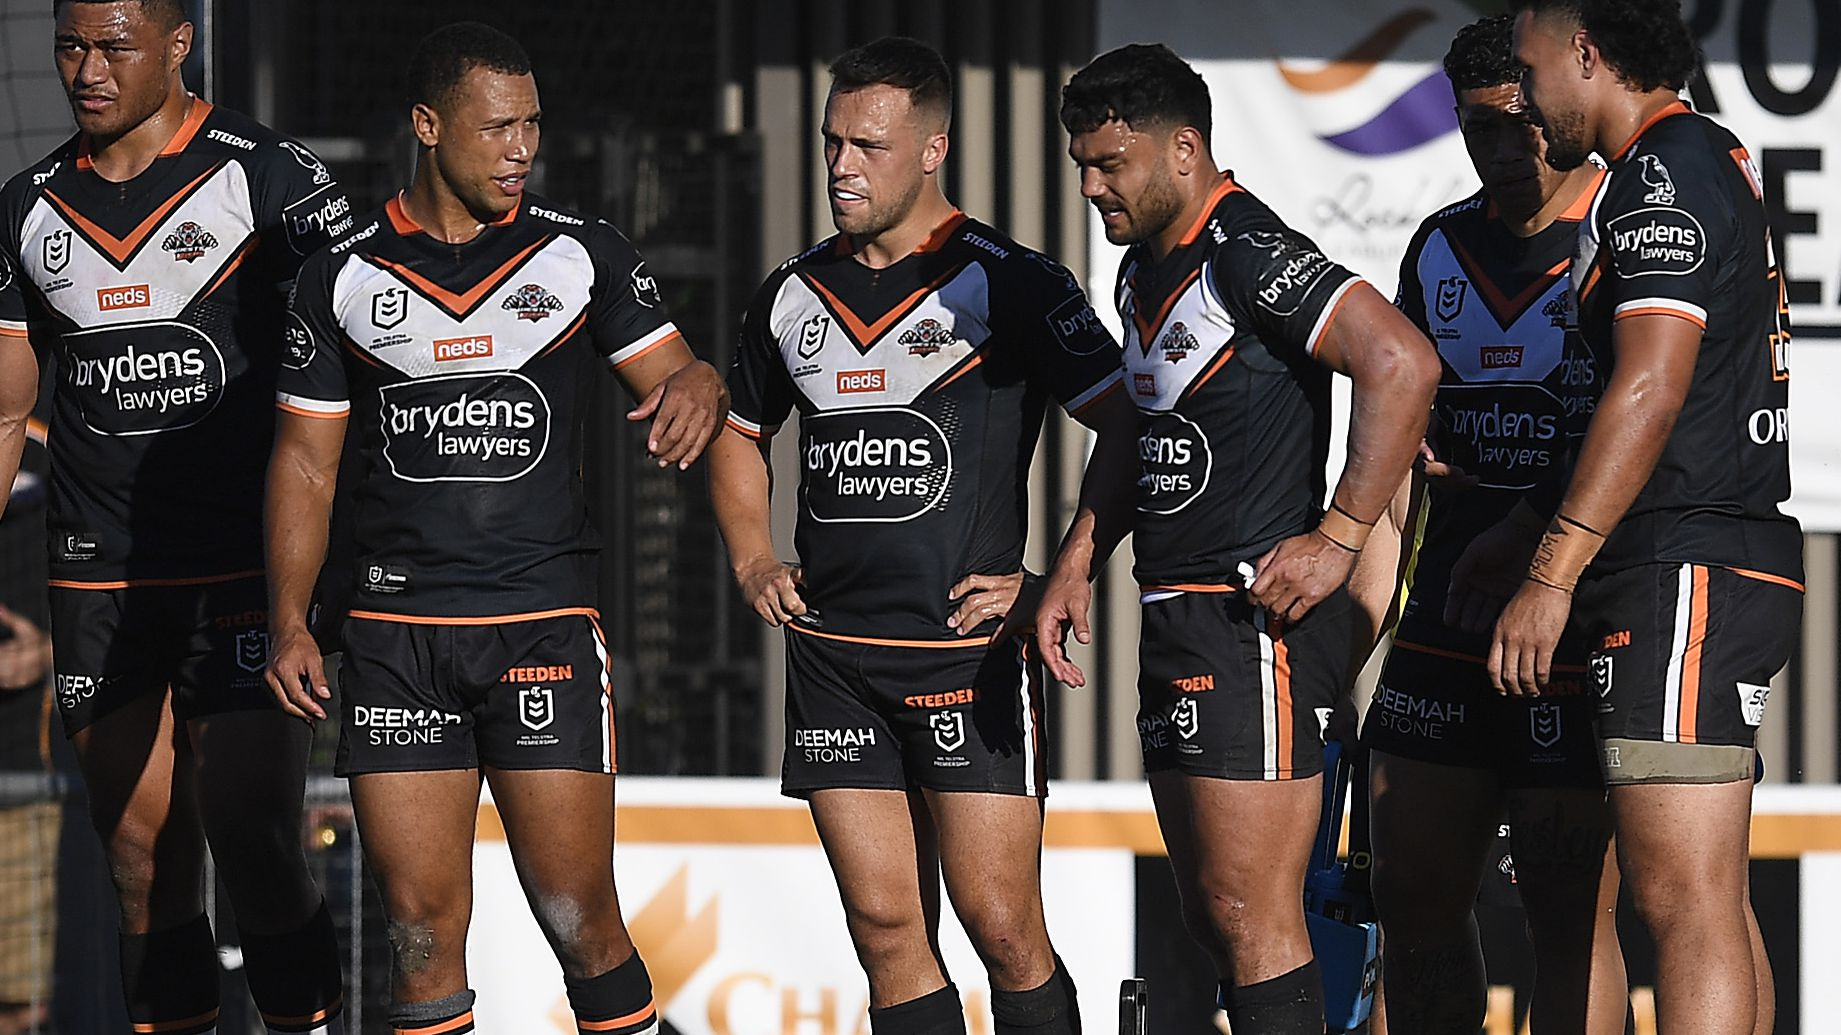 EXCLUSIVE: Phil Gould reveals long path Wests Tigers must walk to climb out of quagmire